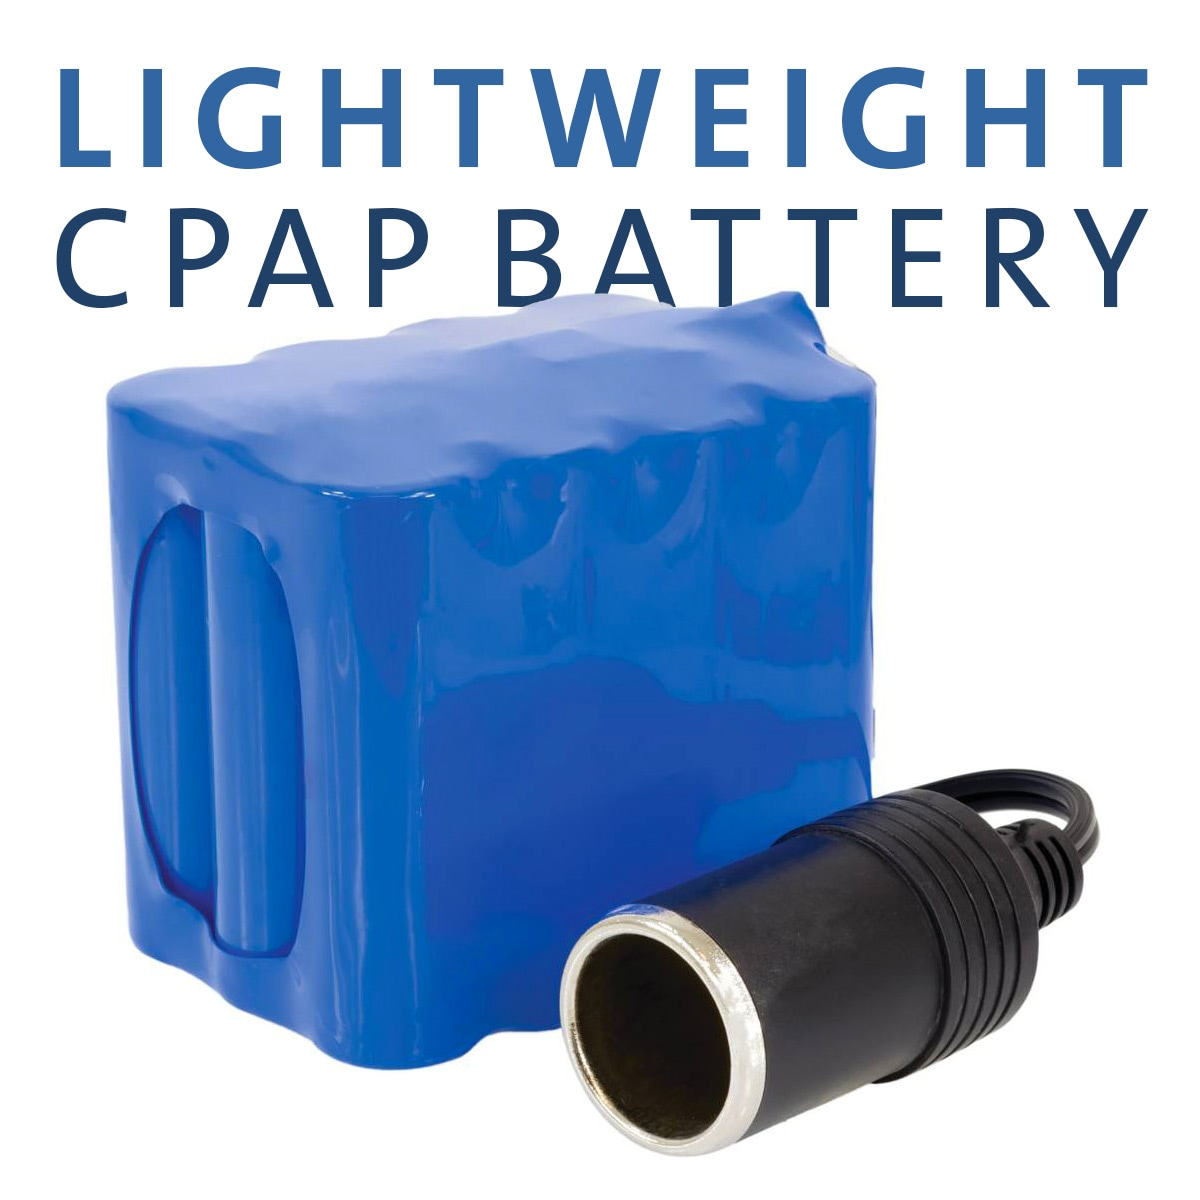 Lightweight Battery Pack for Philips Respironics CPAP & BiPAP Machines